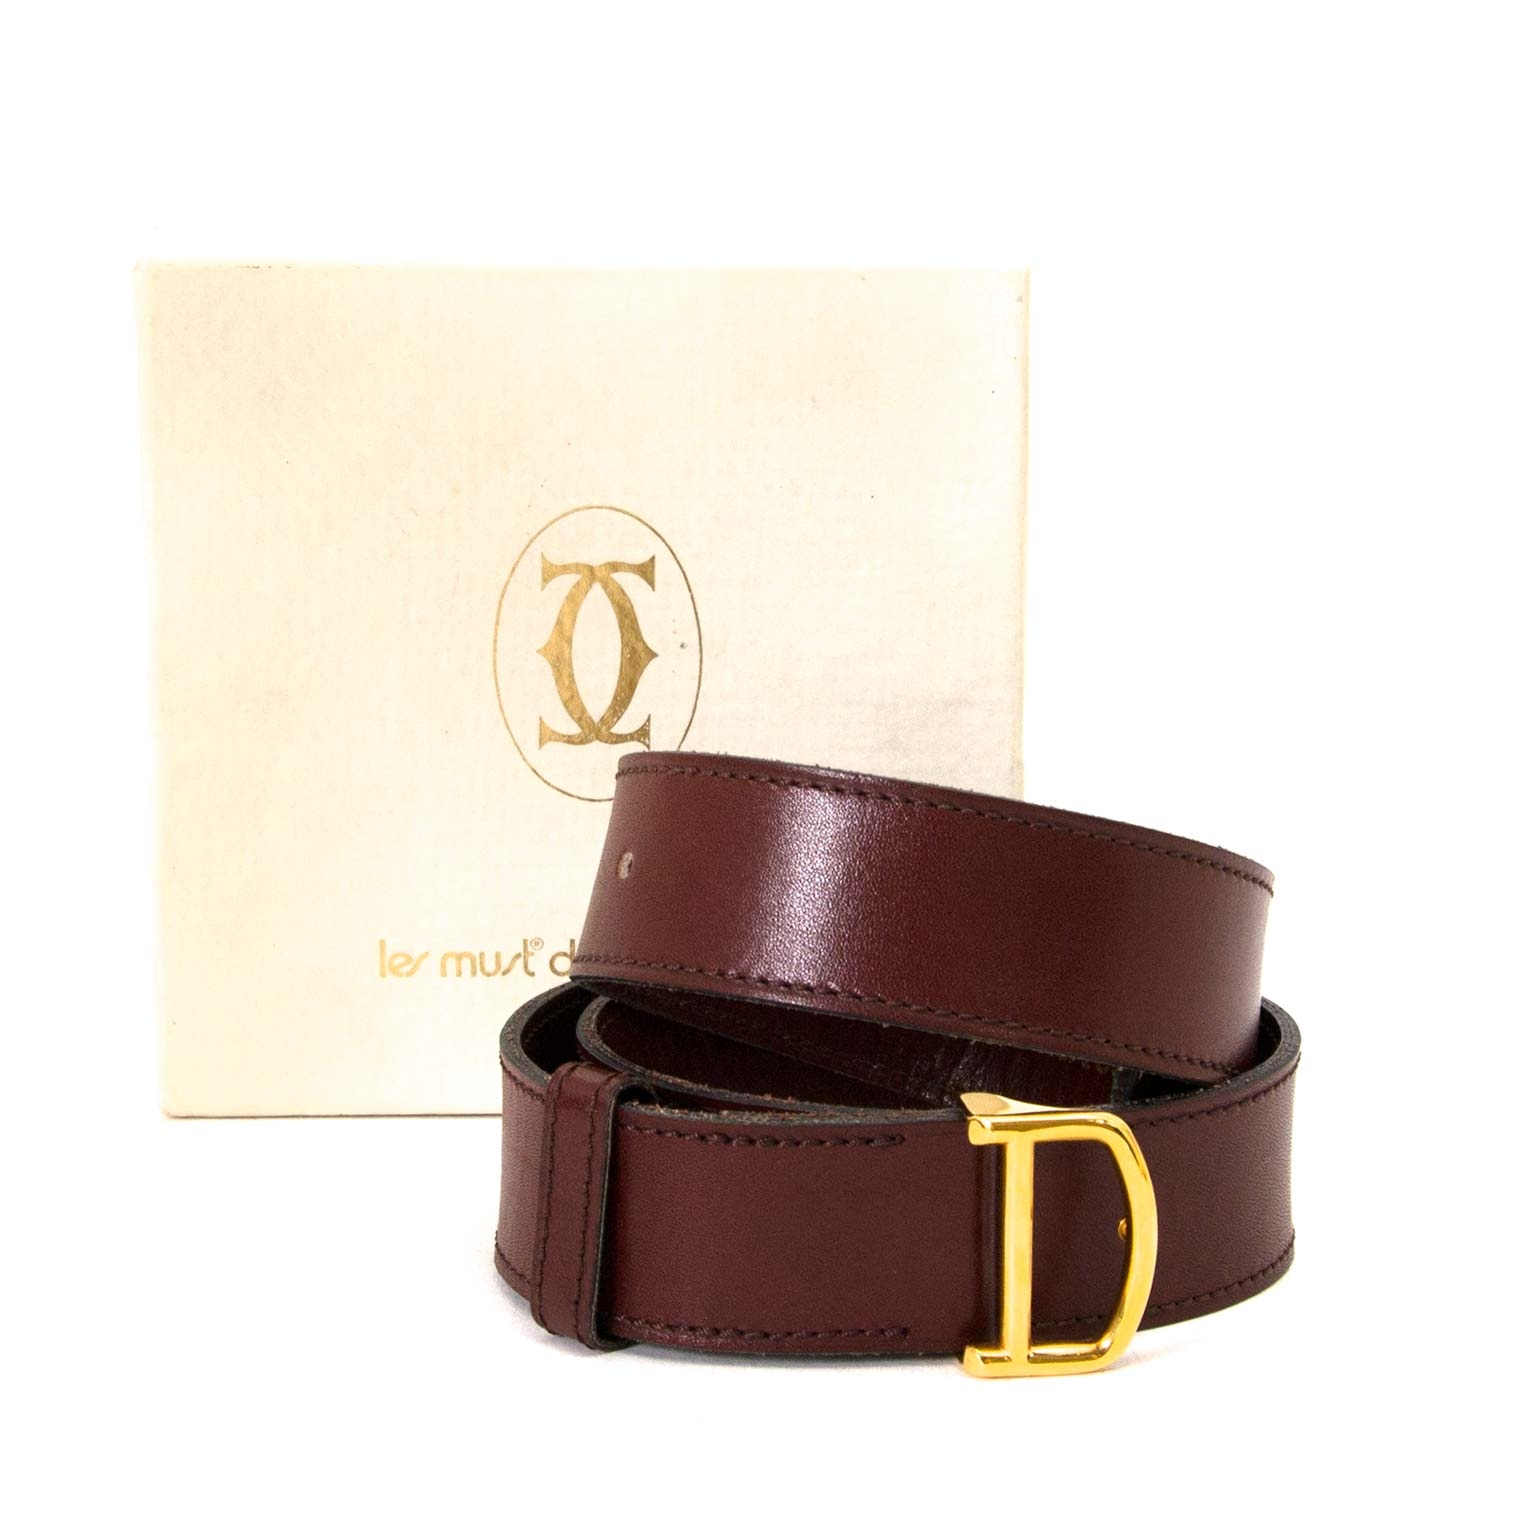 9fab4eb5d10 ... Cartier Bordeaux Leather Belt - Size 66-74 now for sale at labellov  vintage fashion